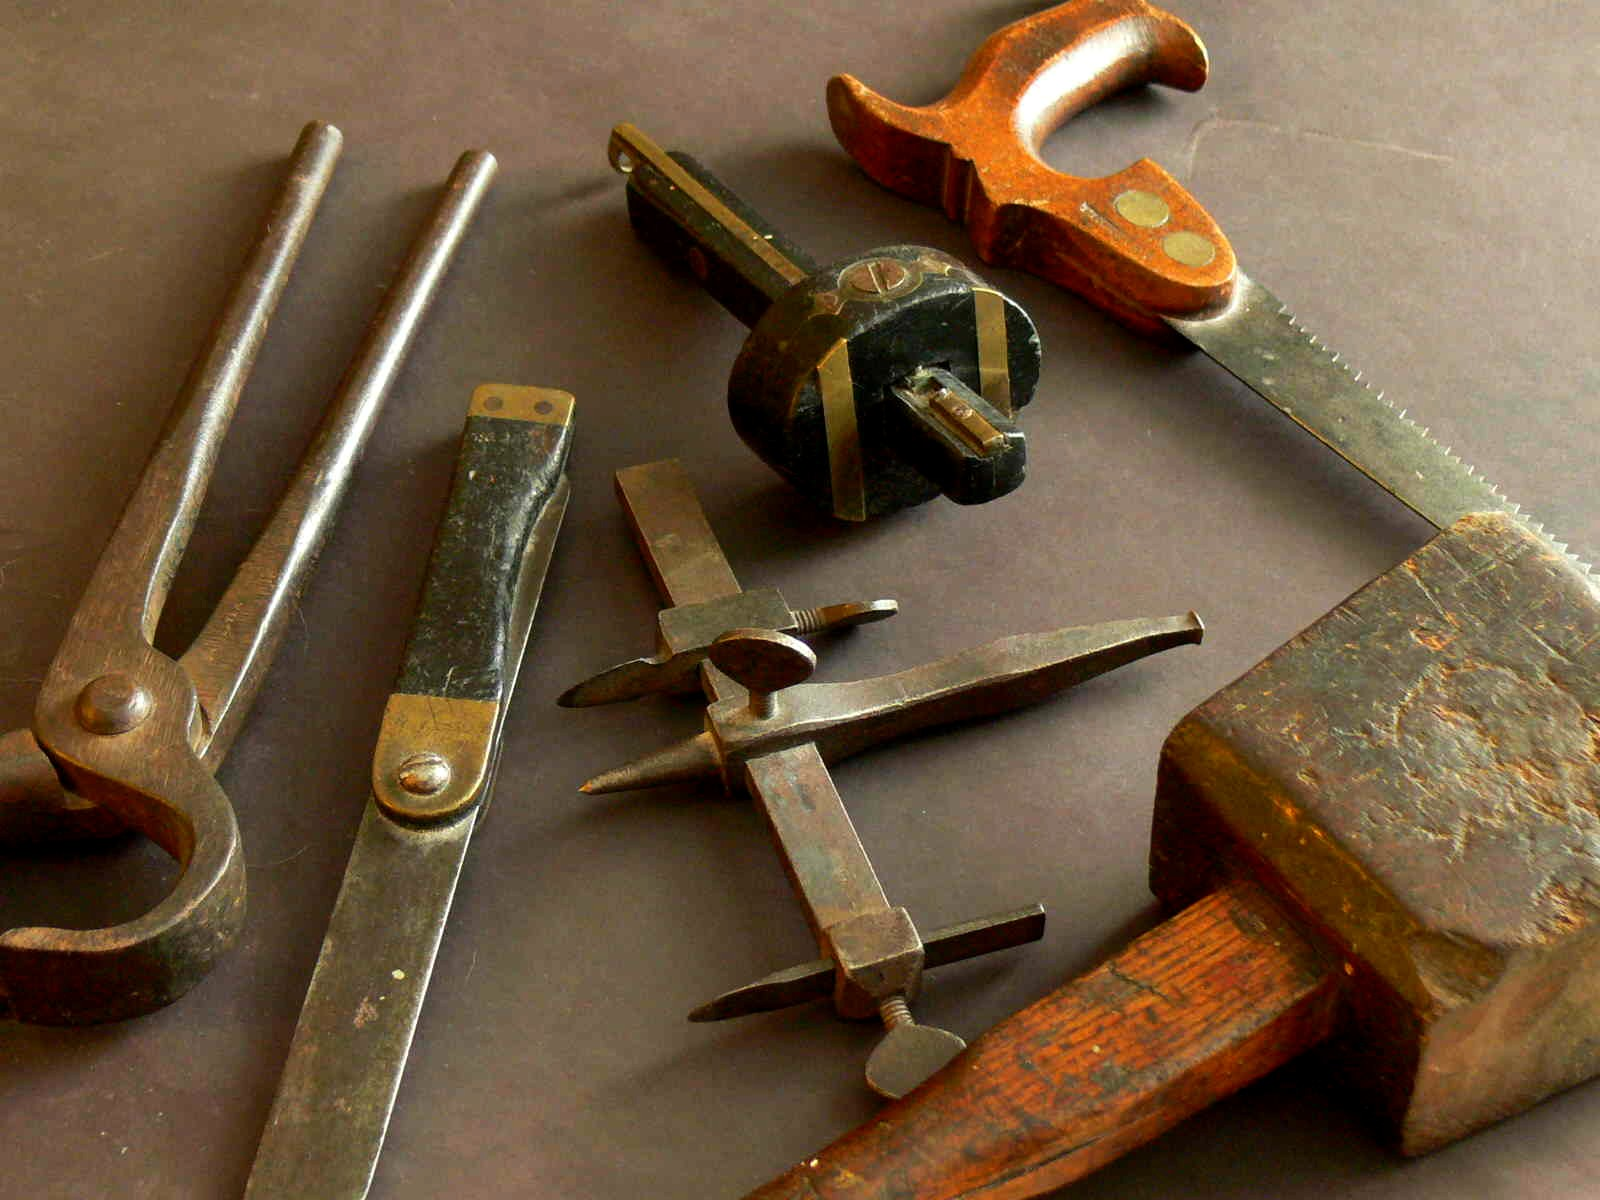 Old tools and the history and associations they conjure up fascinate ...